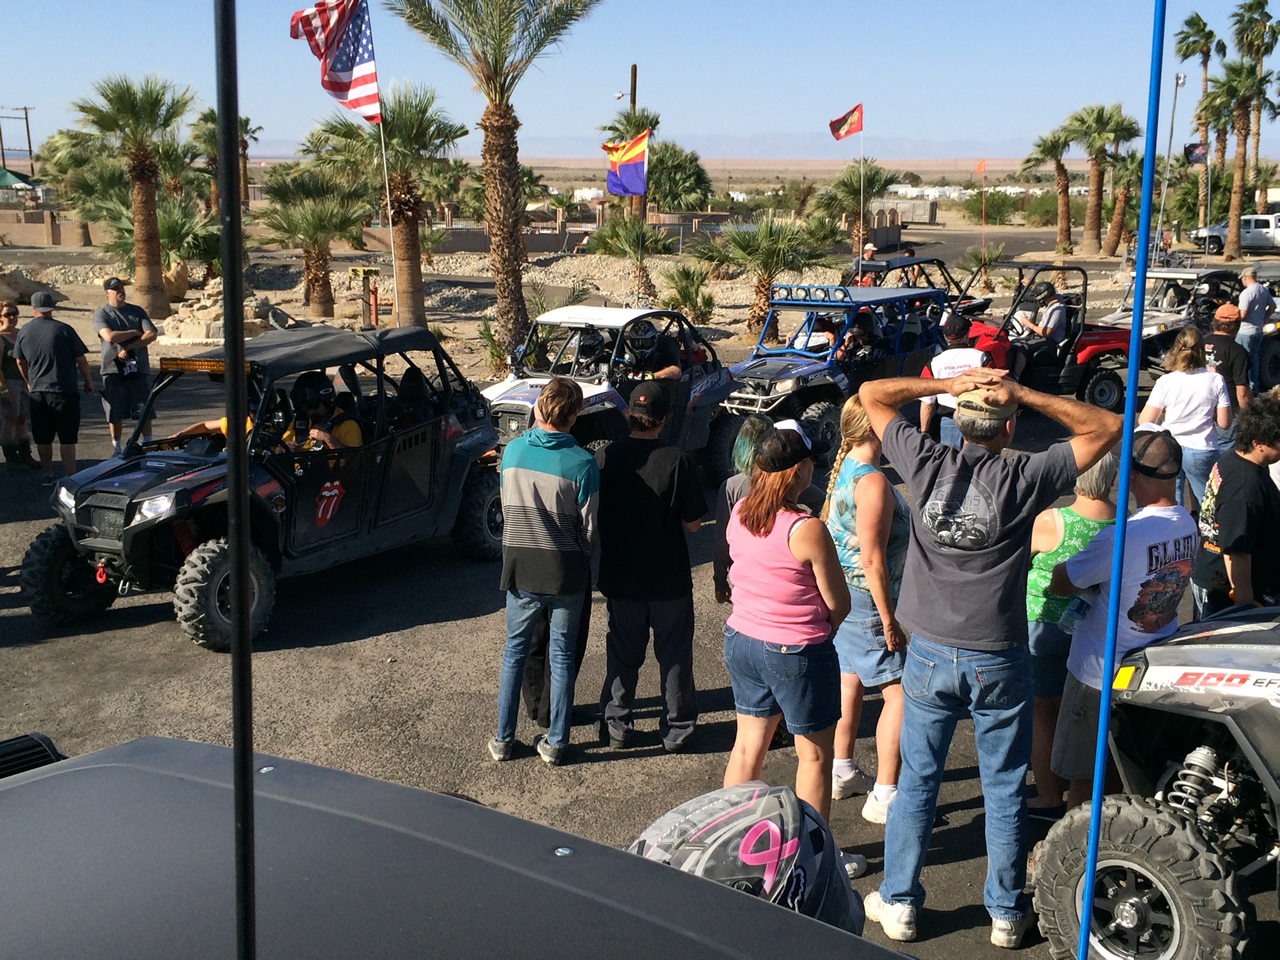 RZR Enthusiasts gather at the annual RZR forum